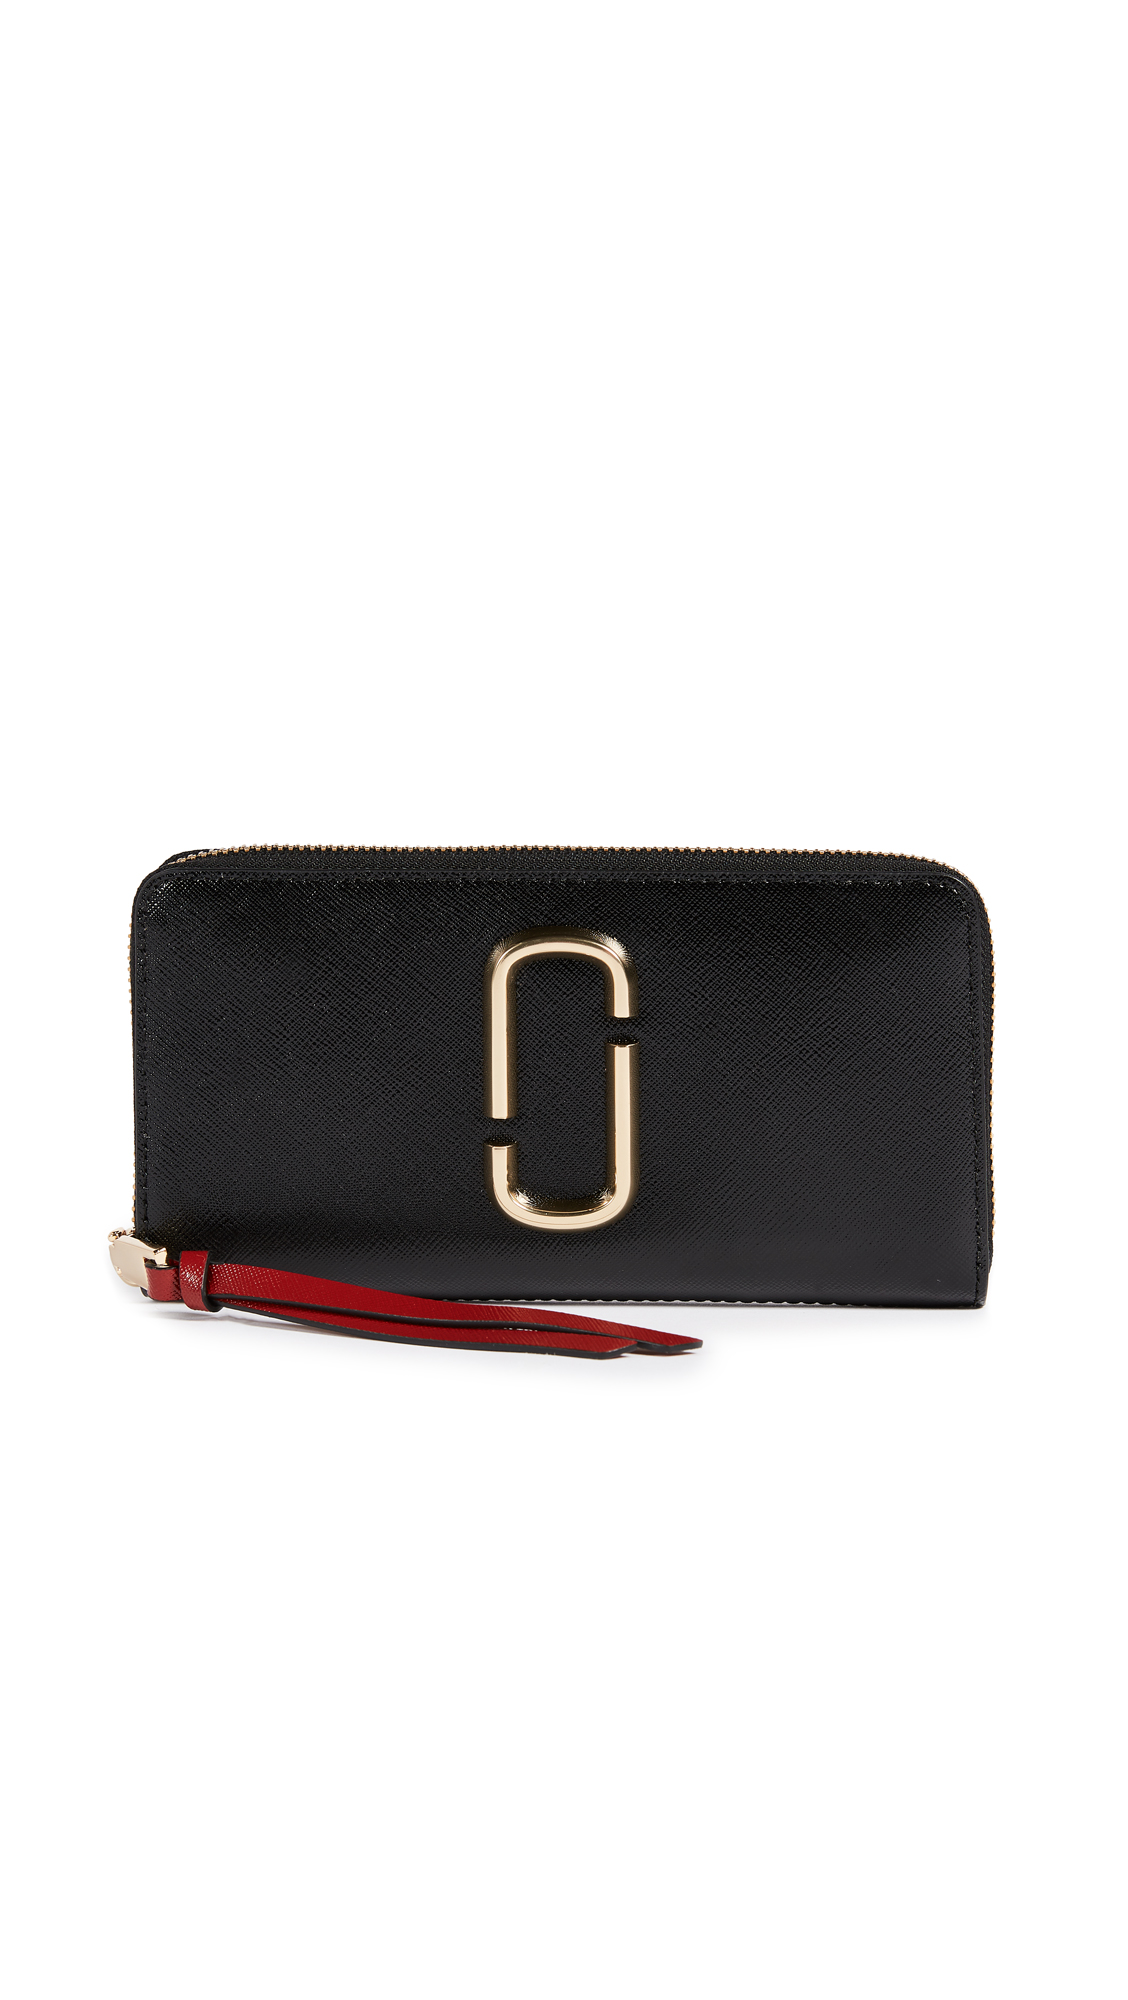 Marc Jacobs Snapshot Standard Continental Wallet - Black/Chianti